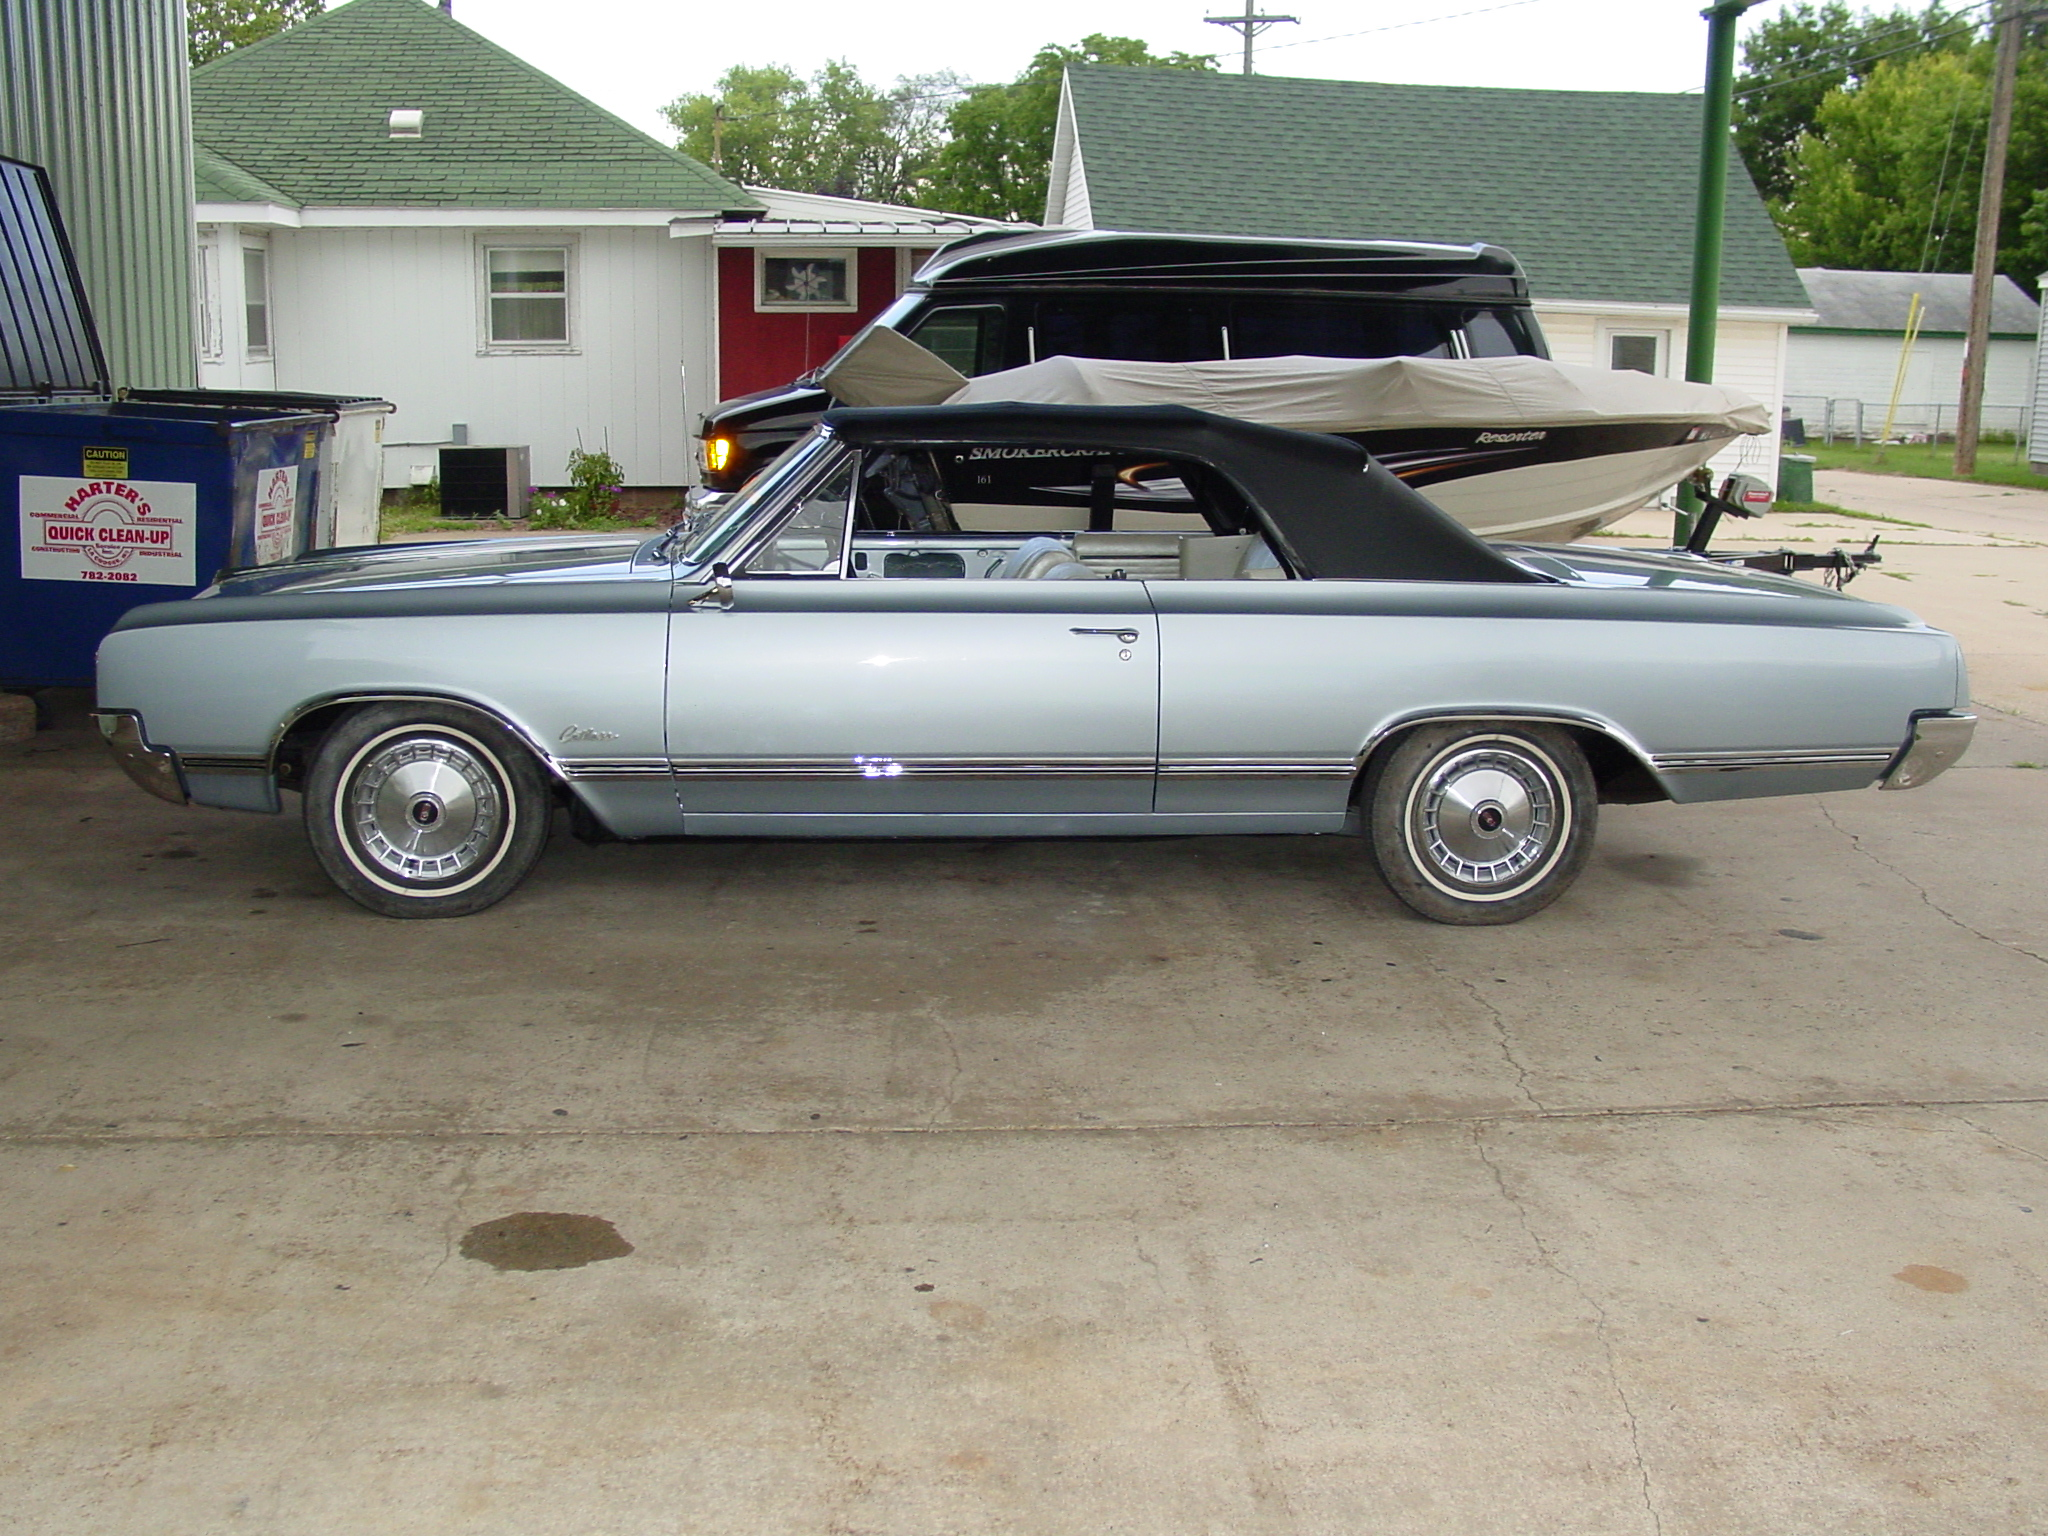 1965 Olds Cutlass Holiday